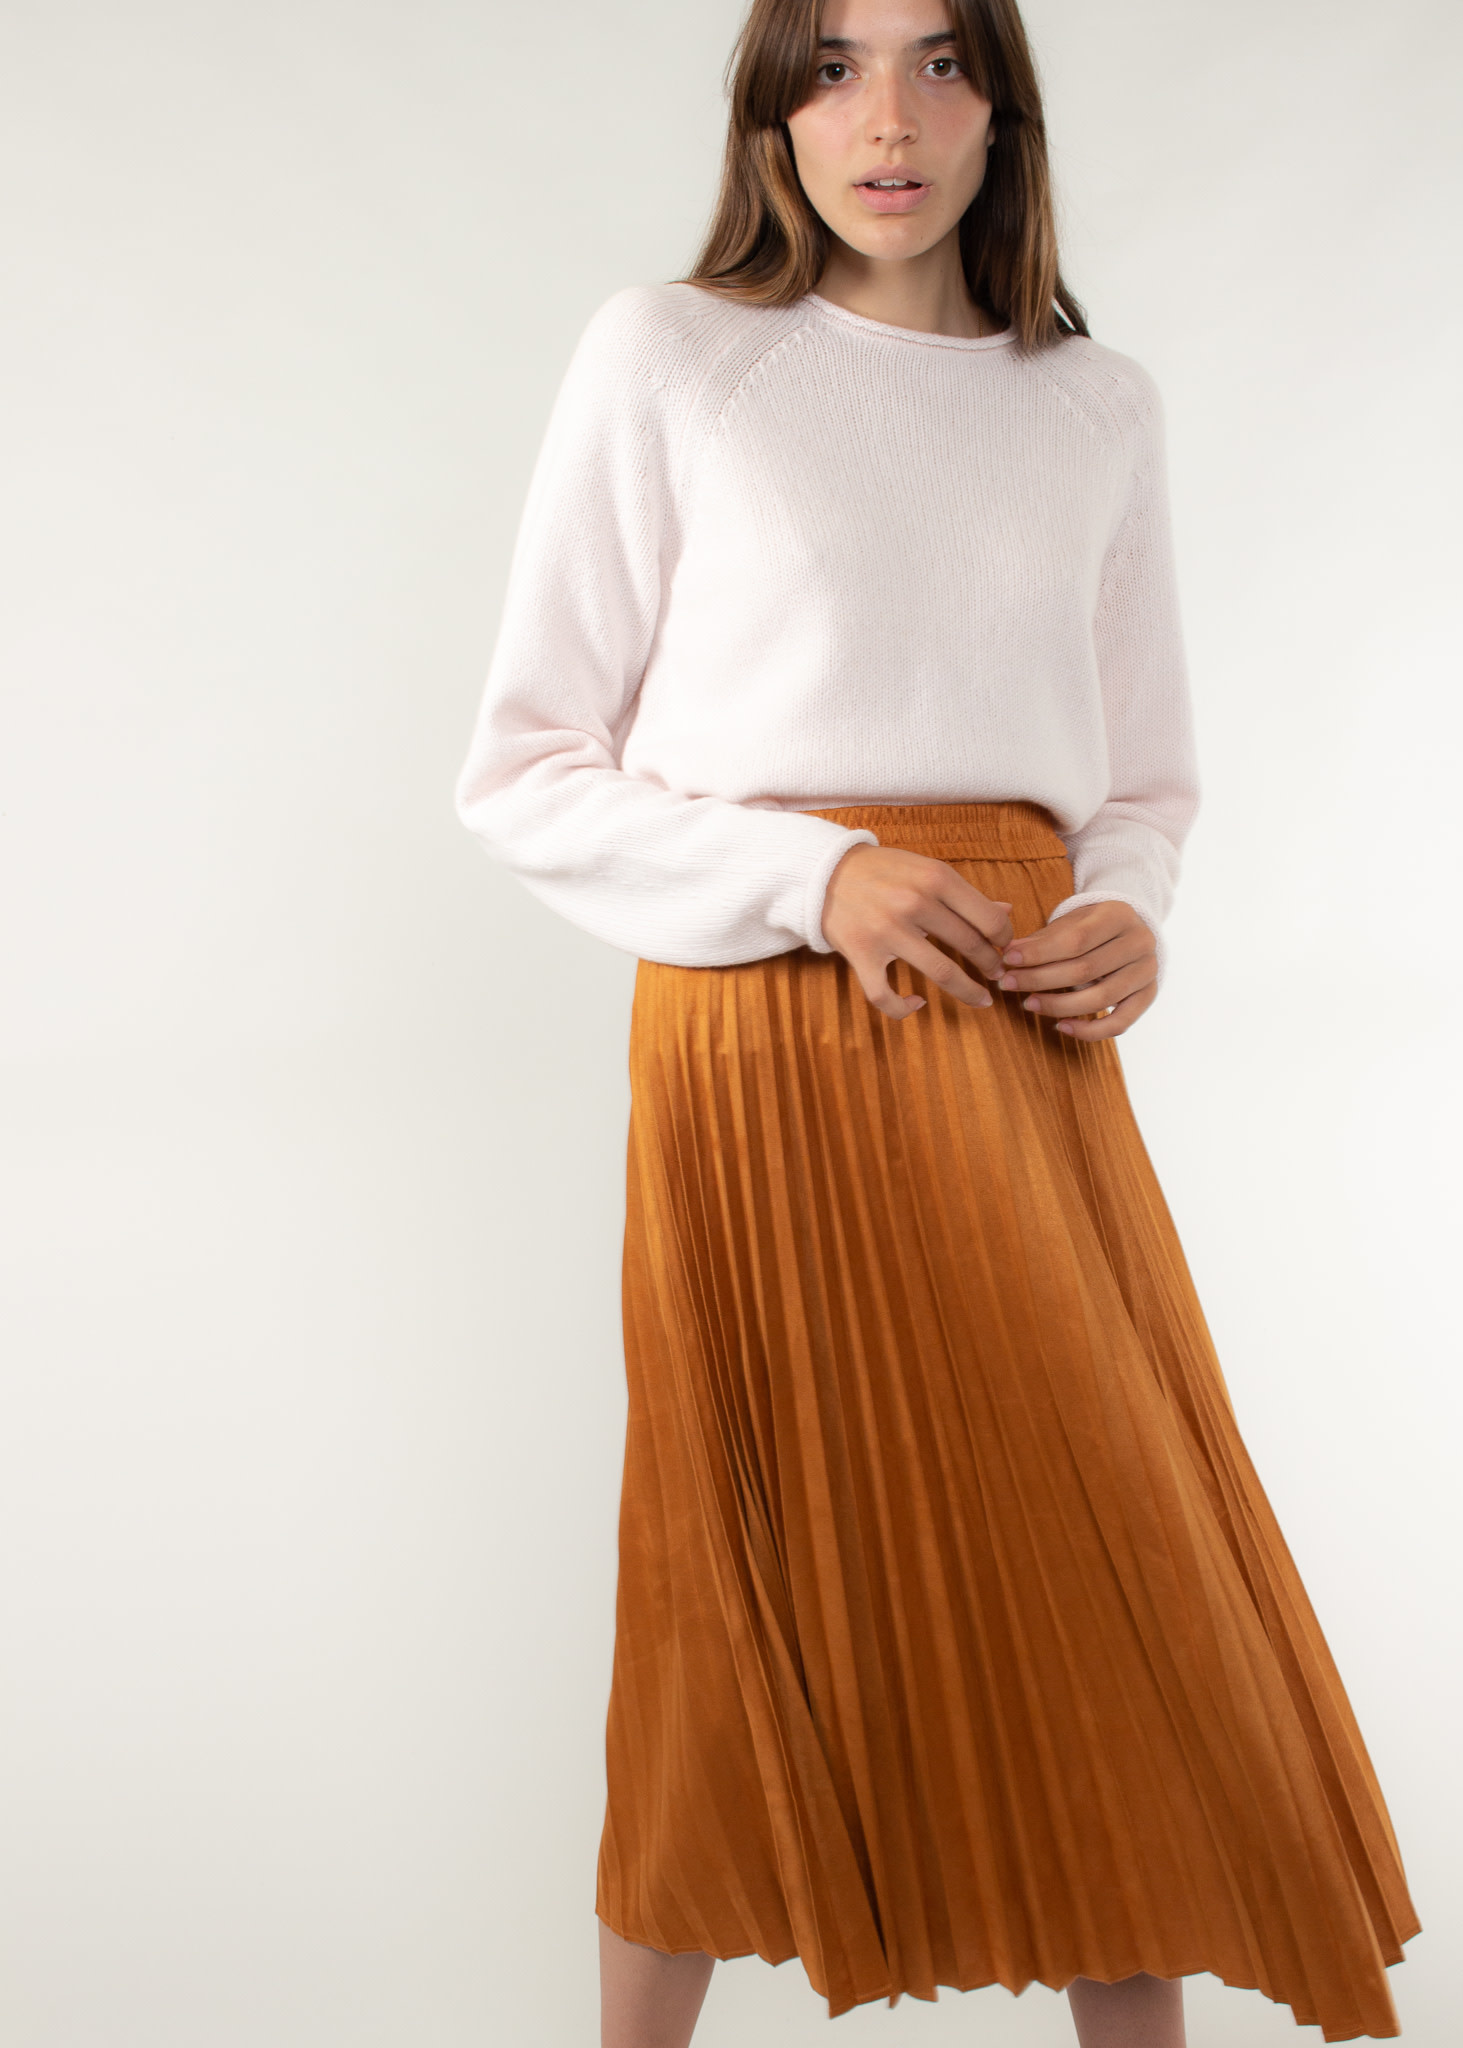 The Korner Camel skirt